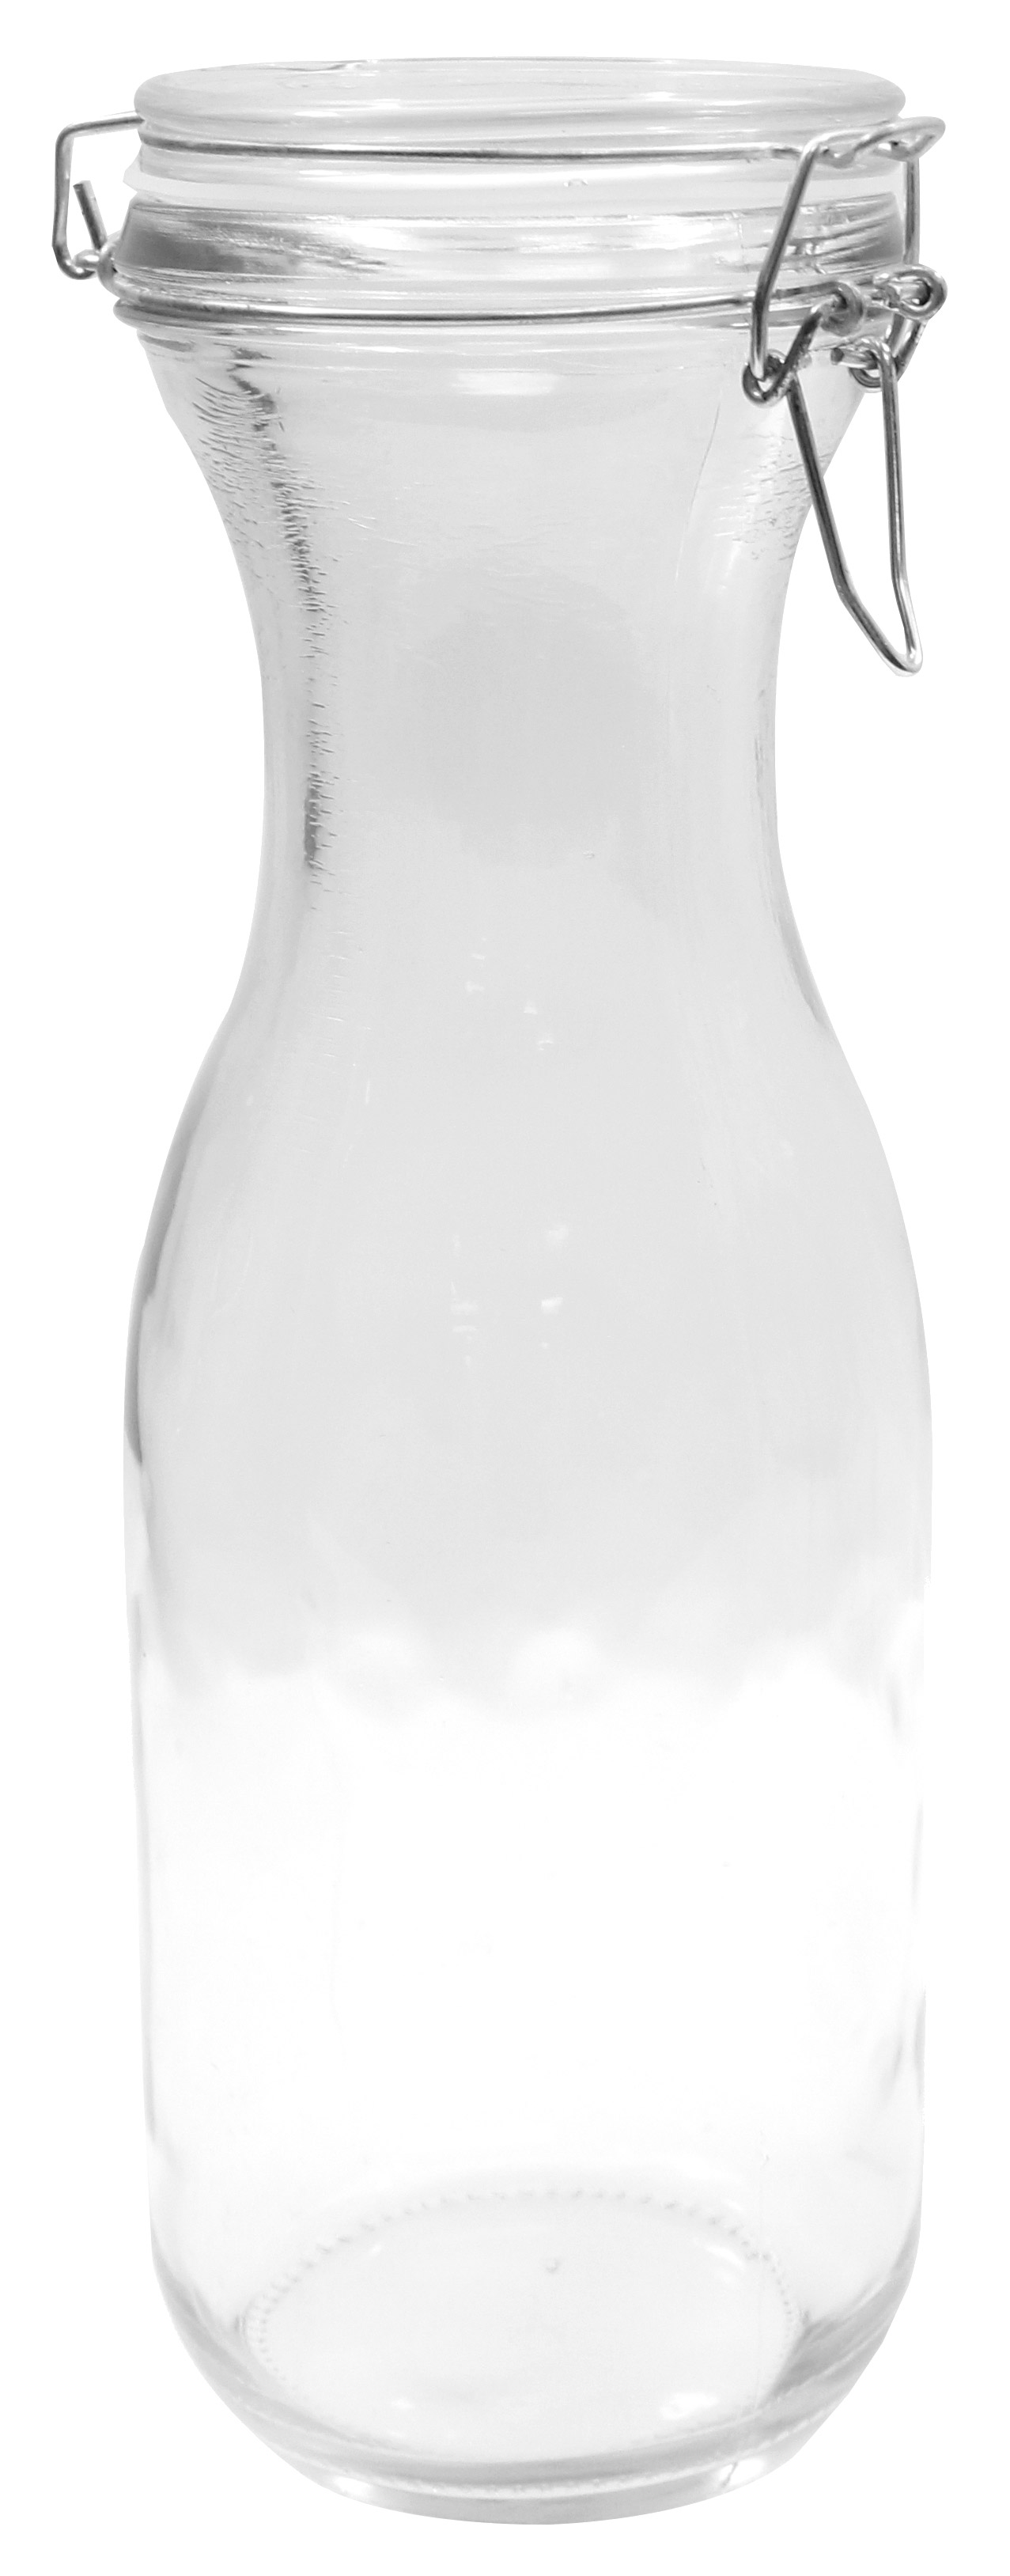 TableCraft Products RGC8 decanter carafe